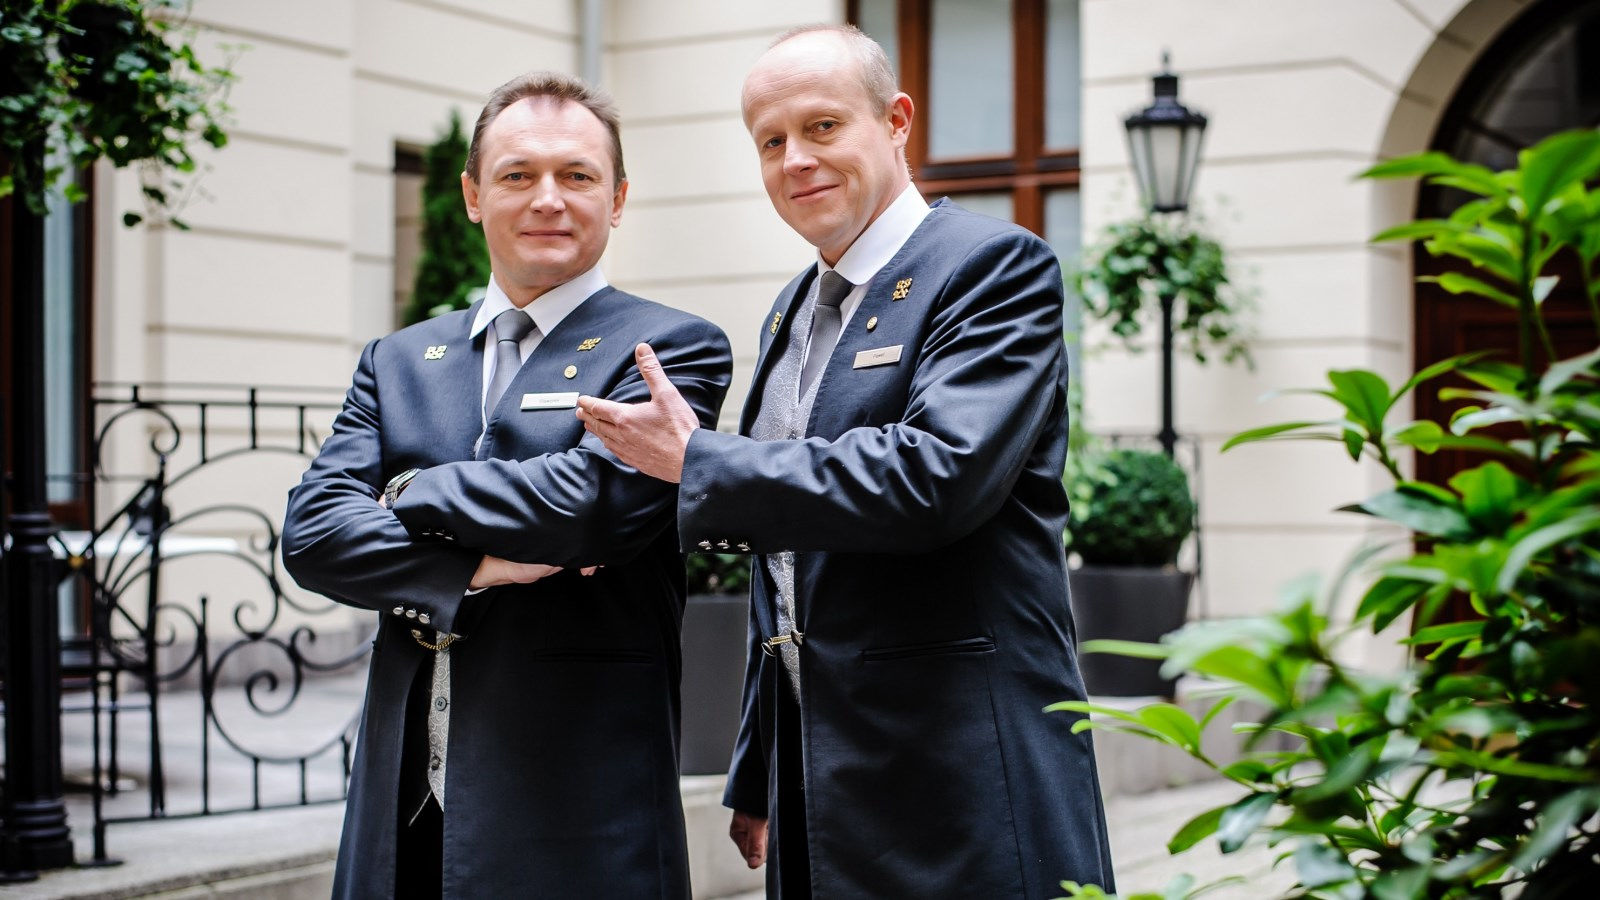 Hotel Bristol's Concierge Team